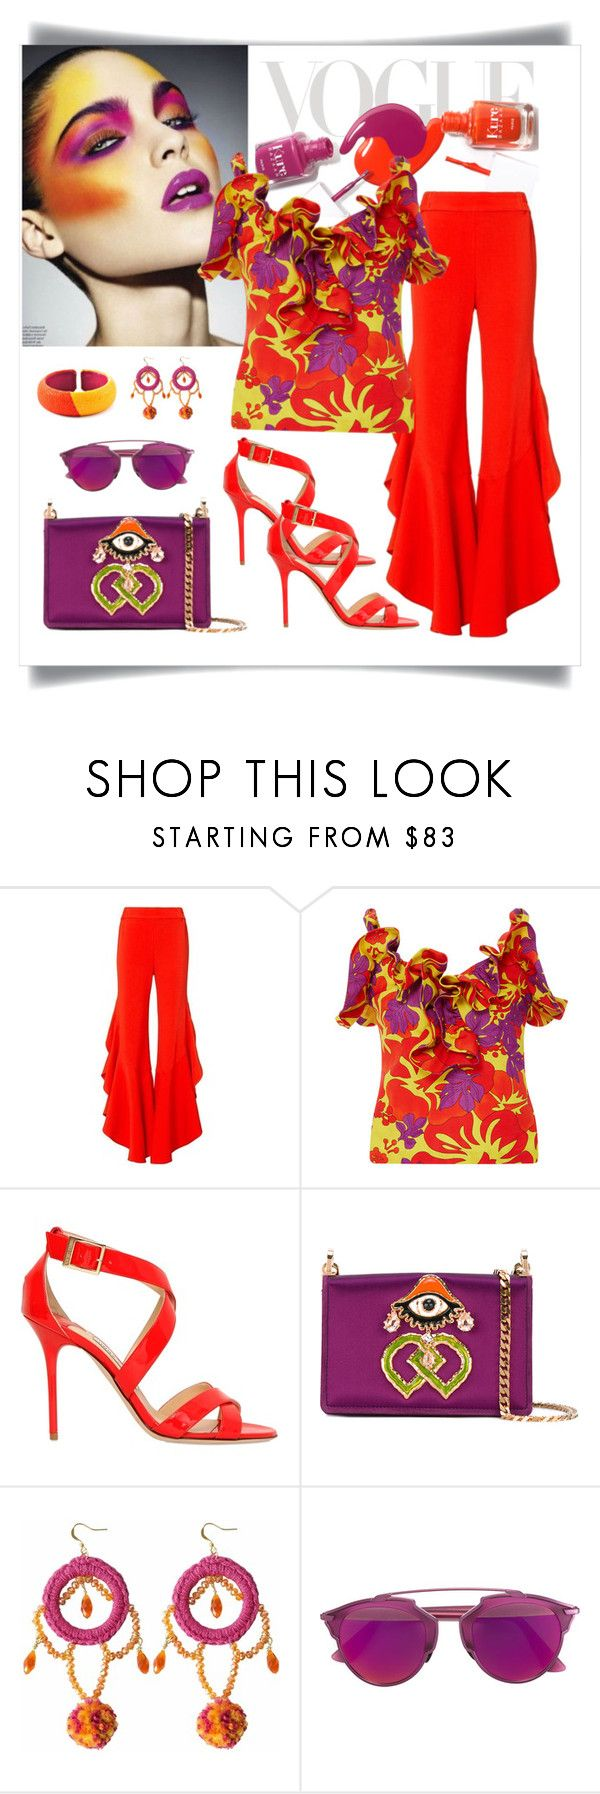 """Rosie Assoulin Blooming Onion Top Look"" by romaboots-1 ❤ liked on Polyvore featuring Roksanda Ilincic, Jonathan Simkhai, Rosie Assoulin, Jimmy Choo, Dsquared2, Ricardo Rodriguez, Christian Dior and DANNIJO"